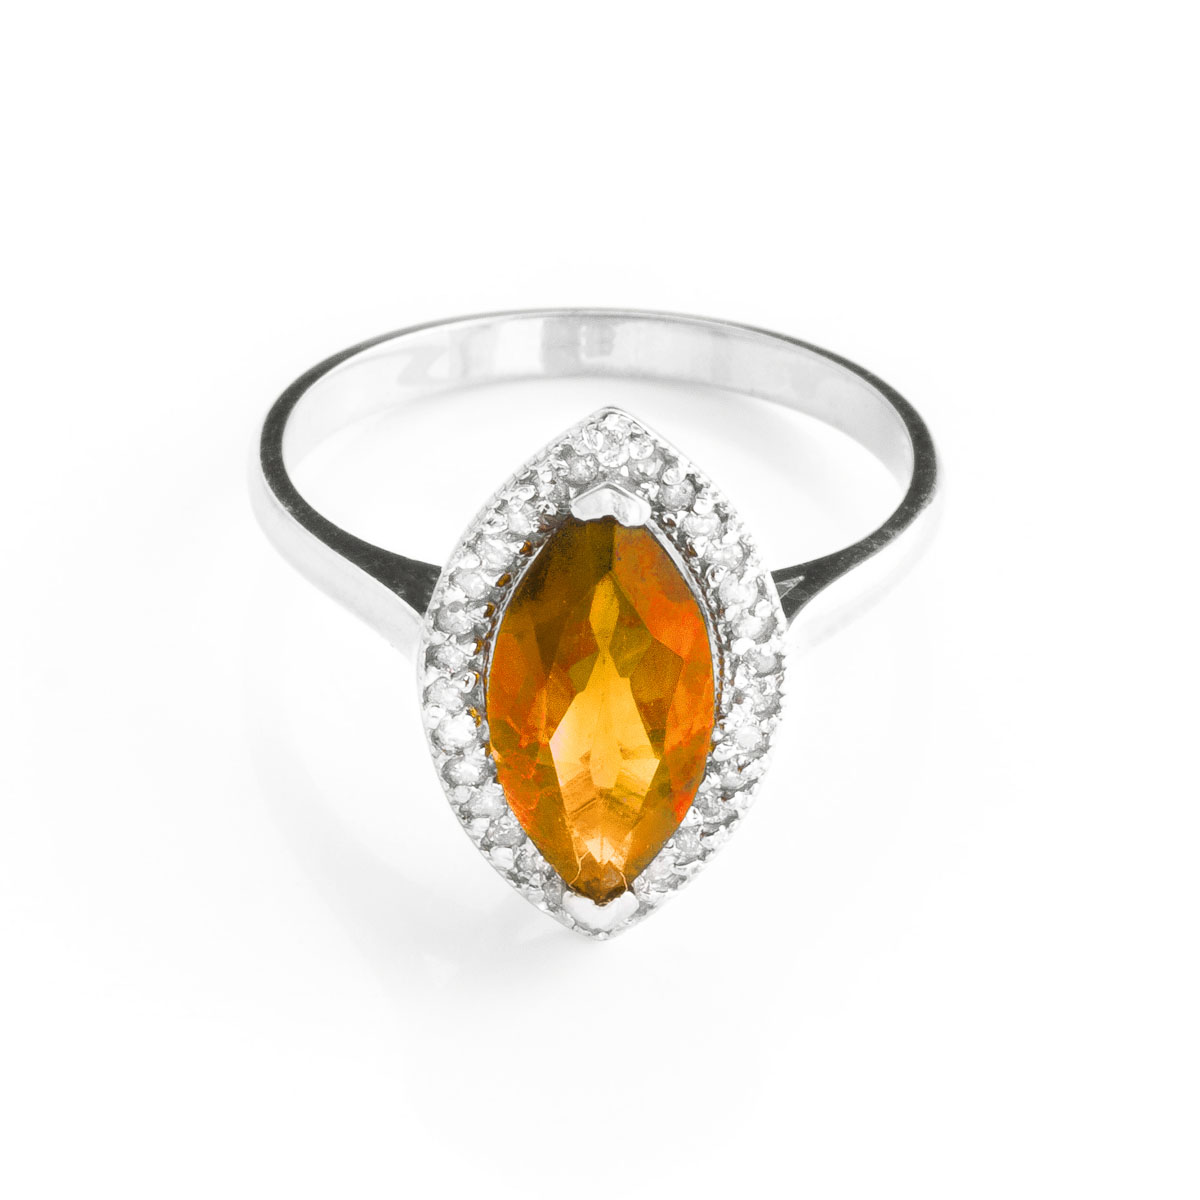 Citrine Halo Ring 1.8 ctw in 18ct White Gold